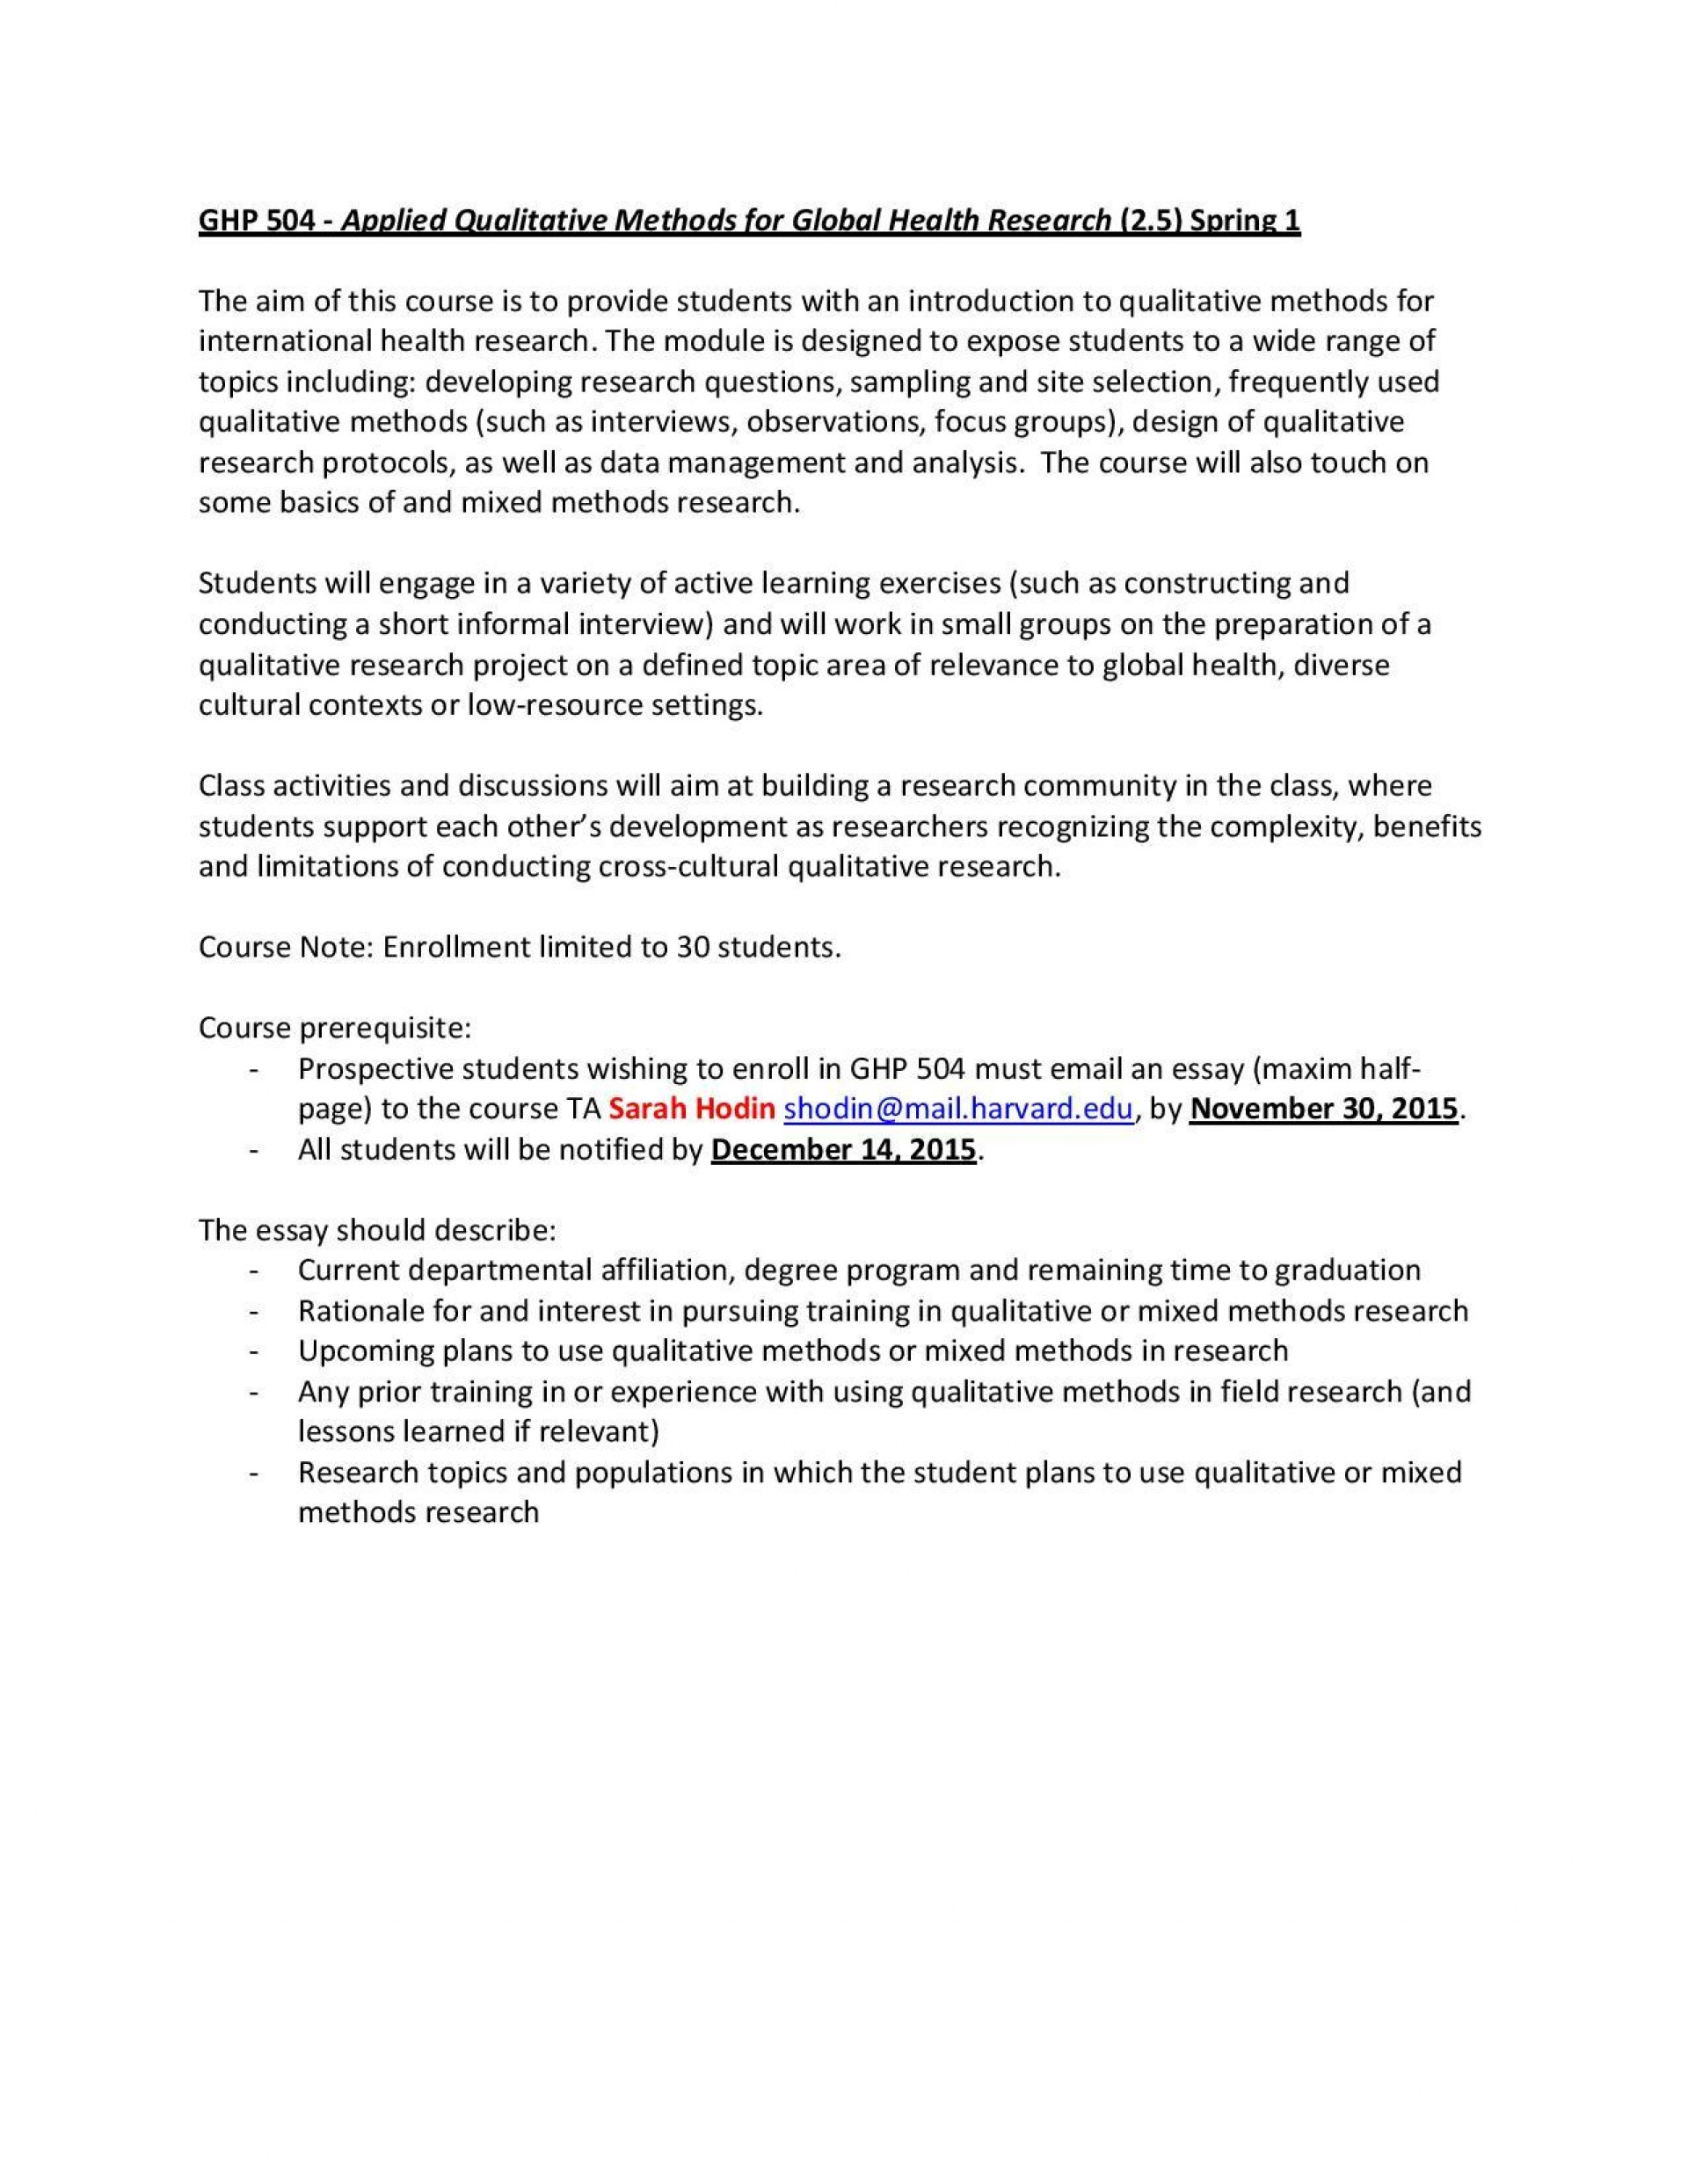 010 Essay Example Ghp Course Announcement Page Harvard Astounding Prompt Prompts 2017-18 College 2017 1920